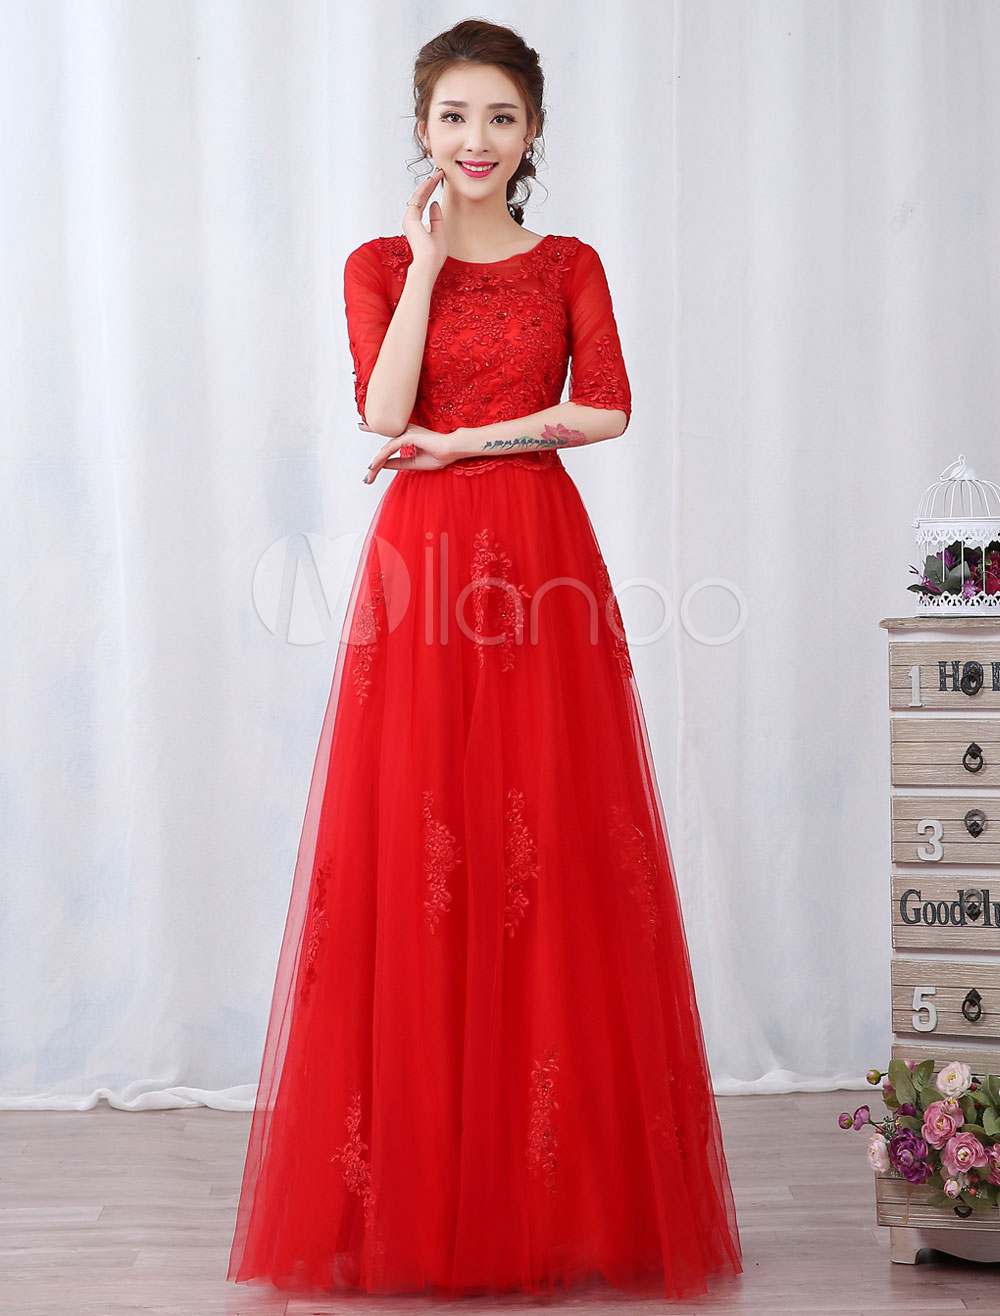 Red Prom Dresses Long Lace Beading Half Sleeve Keyhole Floor Length Formal Evening Gowns (Wedding Cheap Party Dress) photo